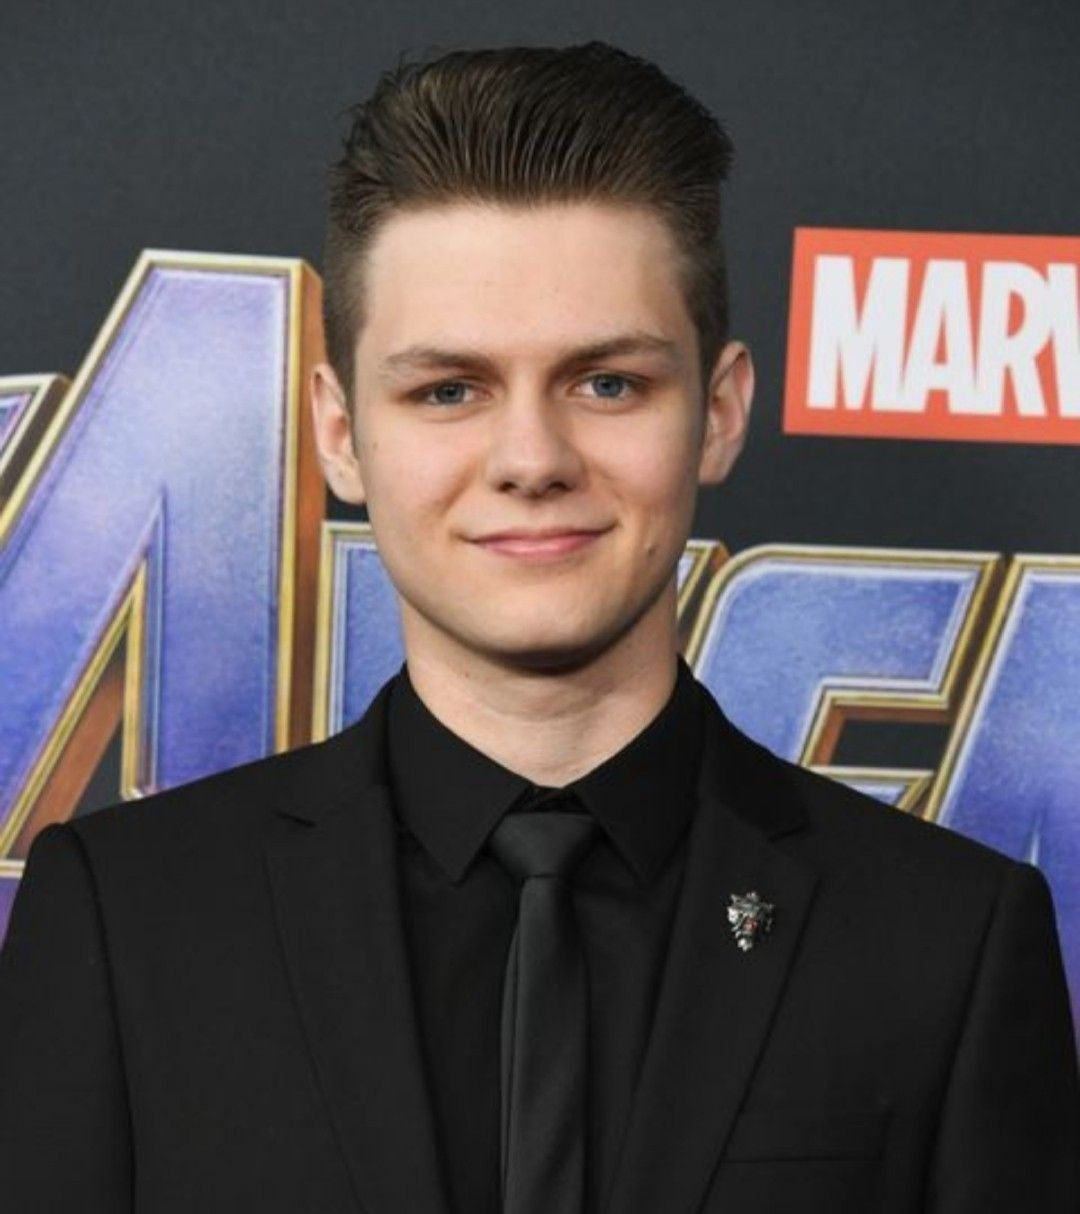 Ty Simpkins Harley In Iron Man 3 At The Avengers Endgame World Premiere April 22 2019 Handsome Celebrities Children S Book Publishers Celebrity Crush